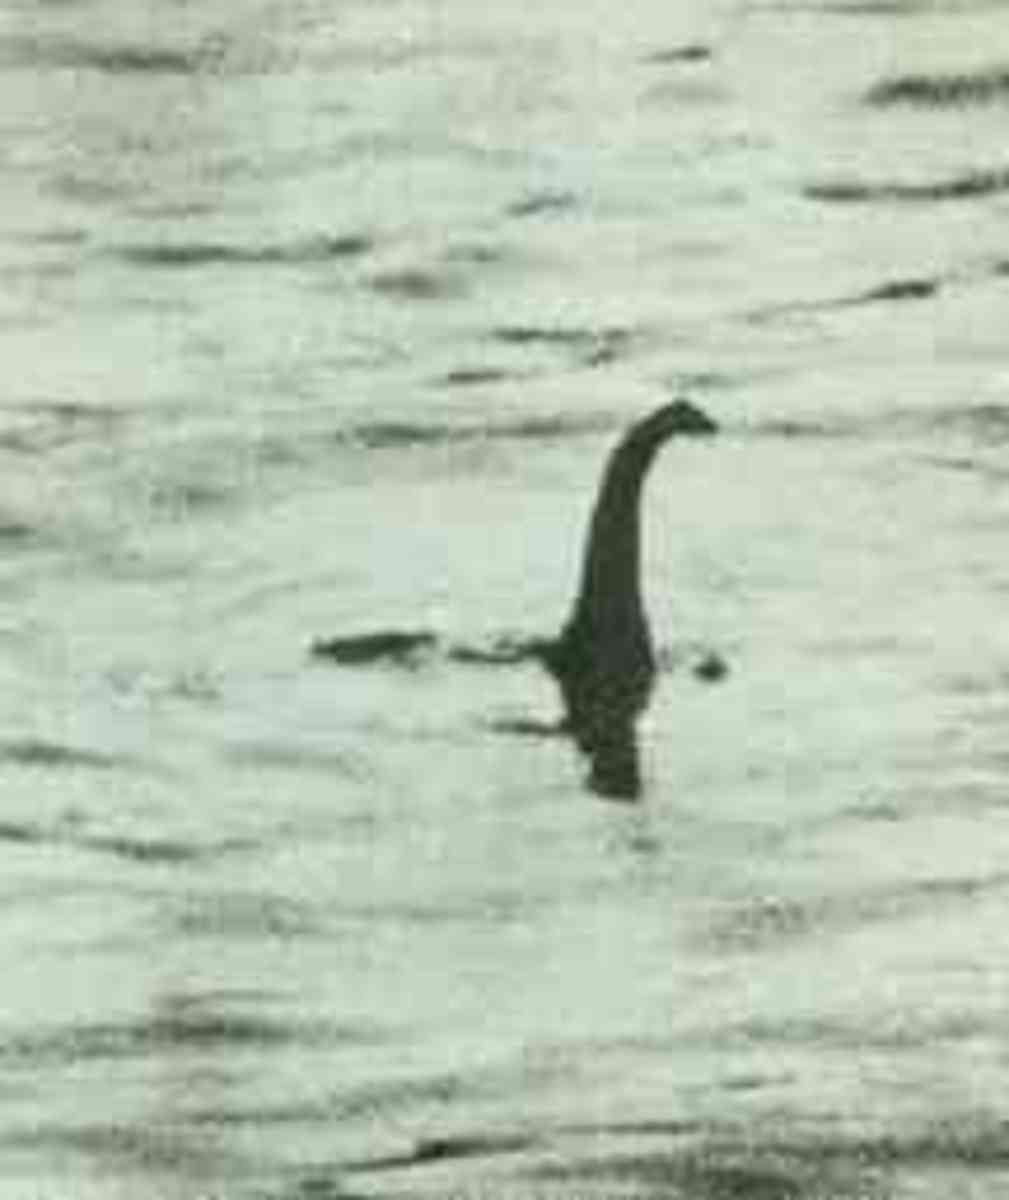 Surgeon's Photo of the Lochness Monster (Hoax)